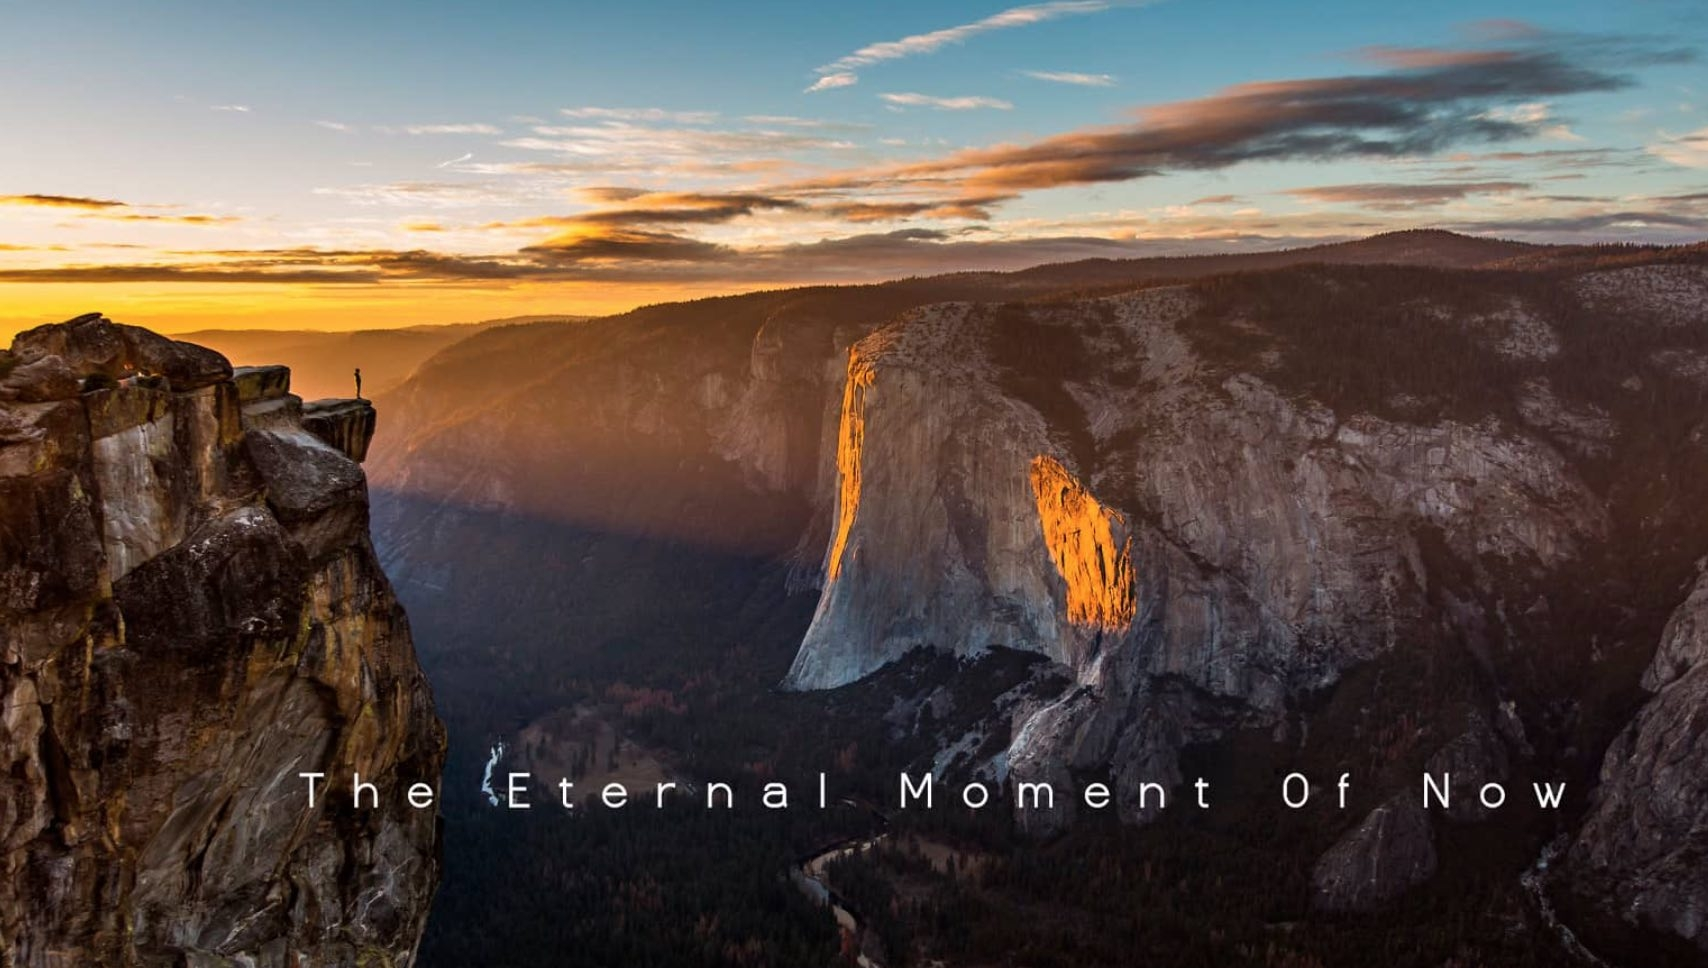 The Eternal Moment of Now